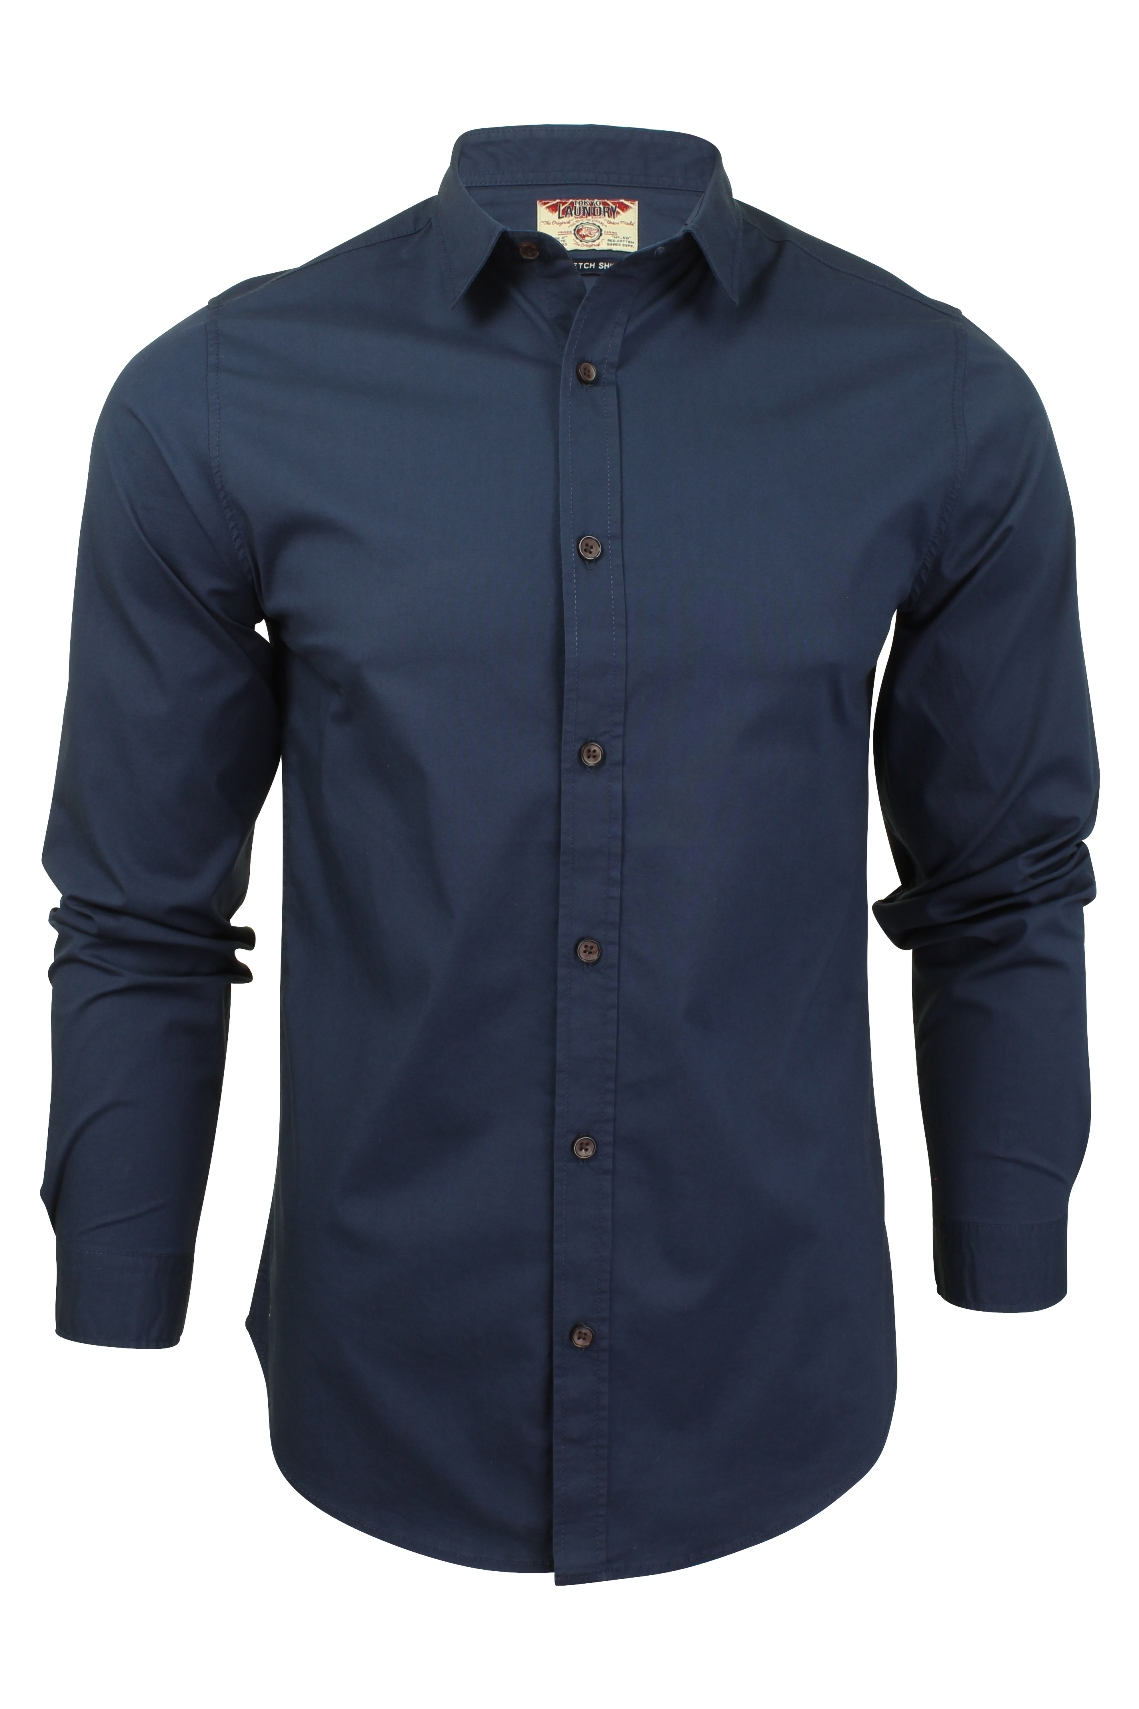 Tokyo Laundry Laundry Tokyo 'Eastport' Homme Chemise - manches longue a413b9